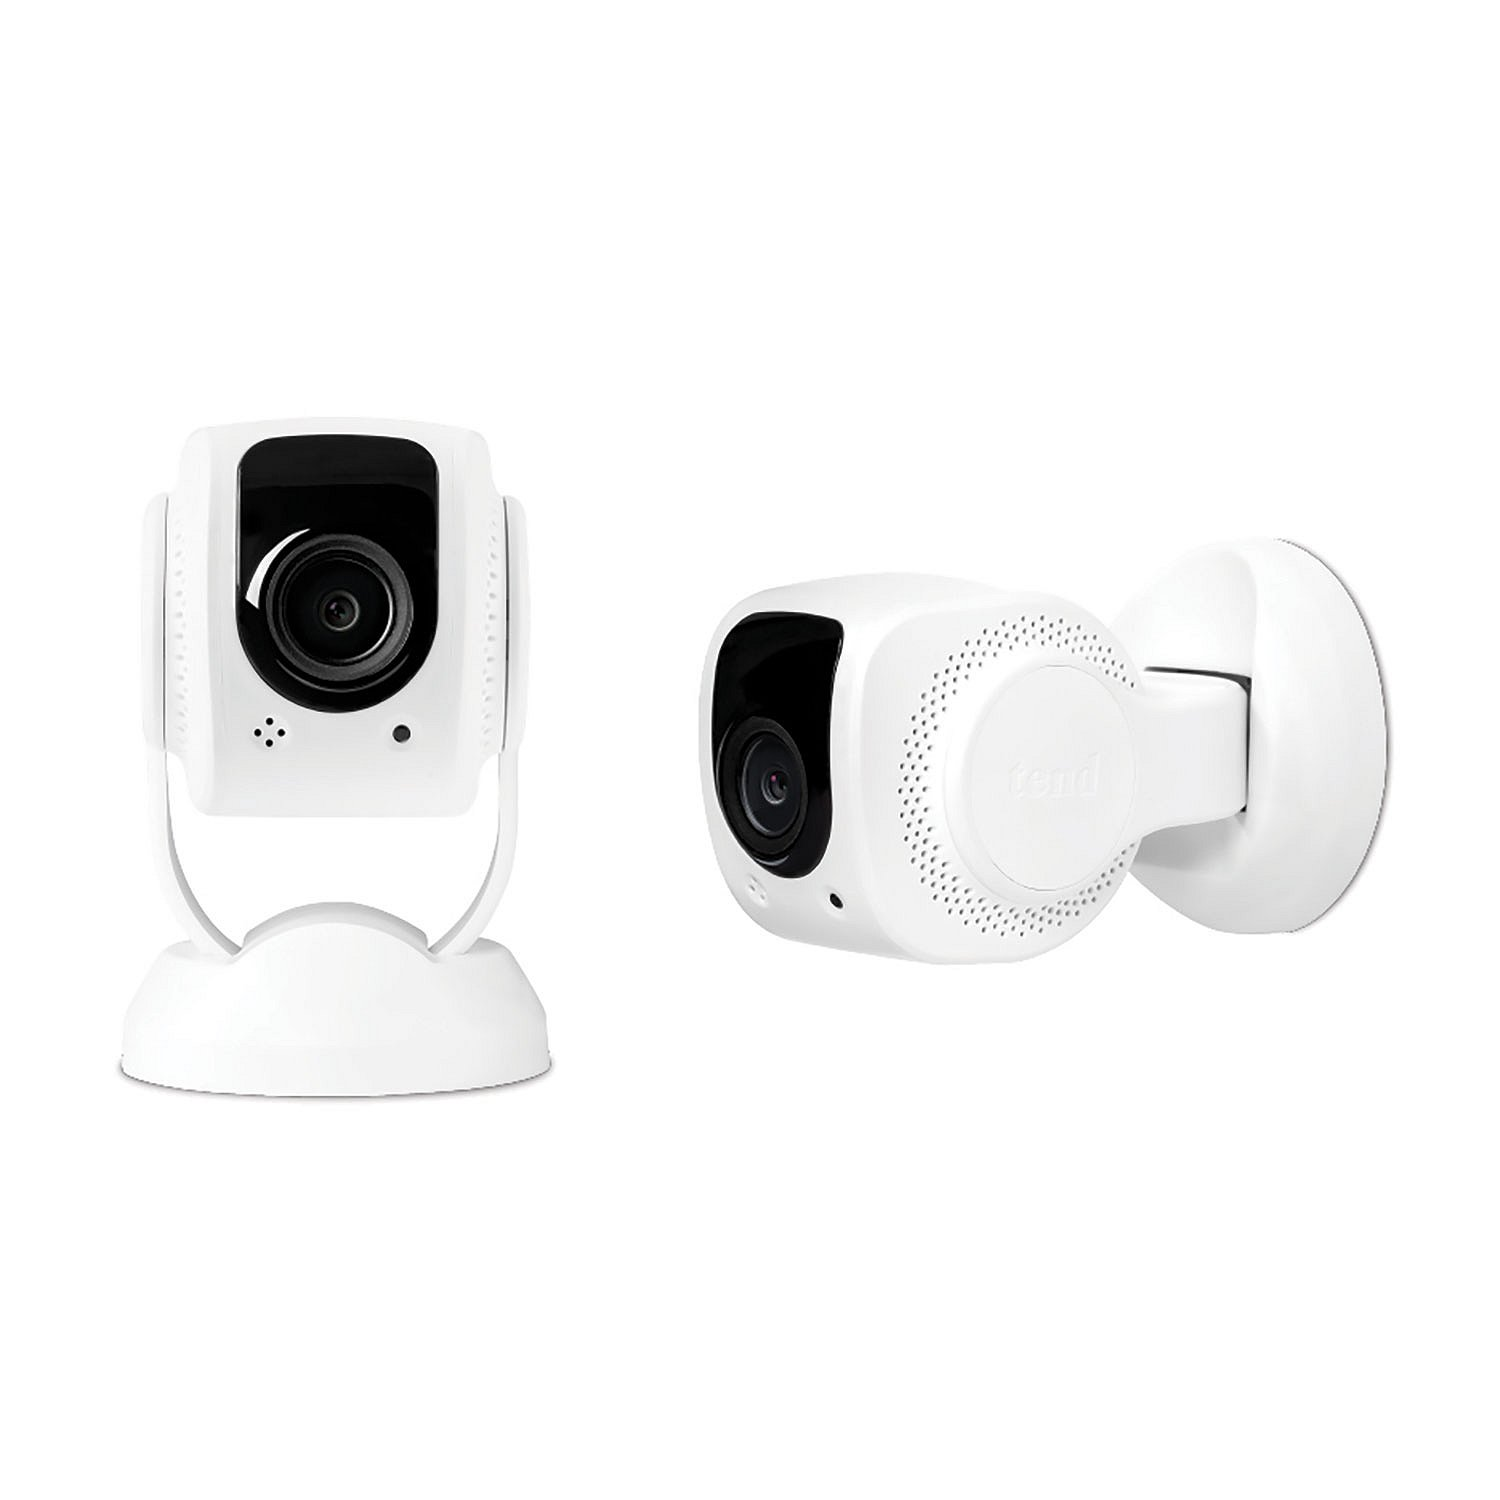 Tend Secure Lynx 1080p Wi-Fi Indoor Security Camera 2-Pack, Facial Recognition